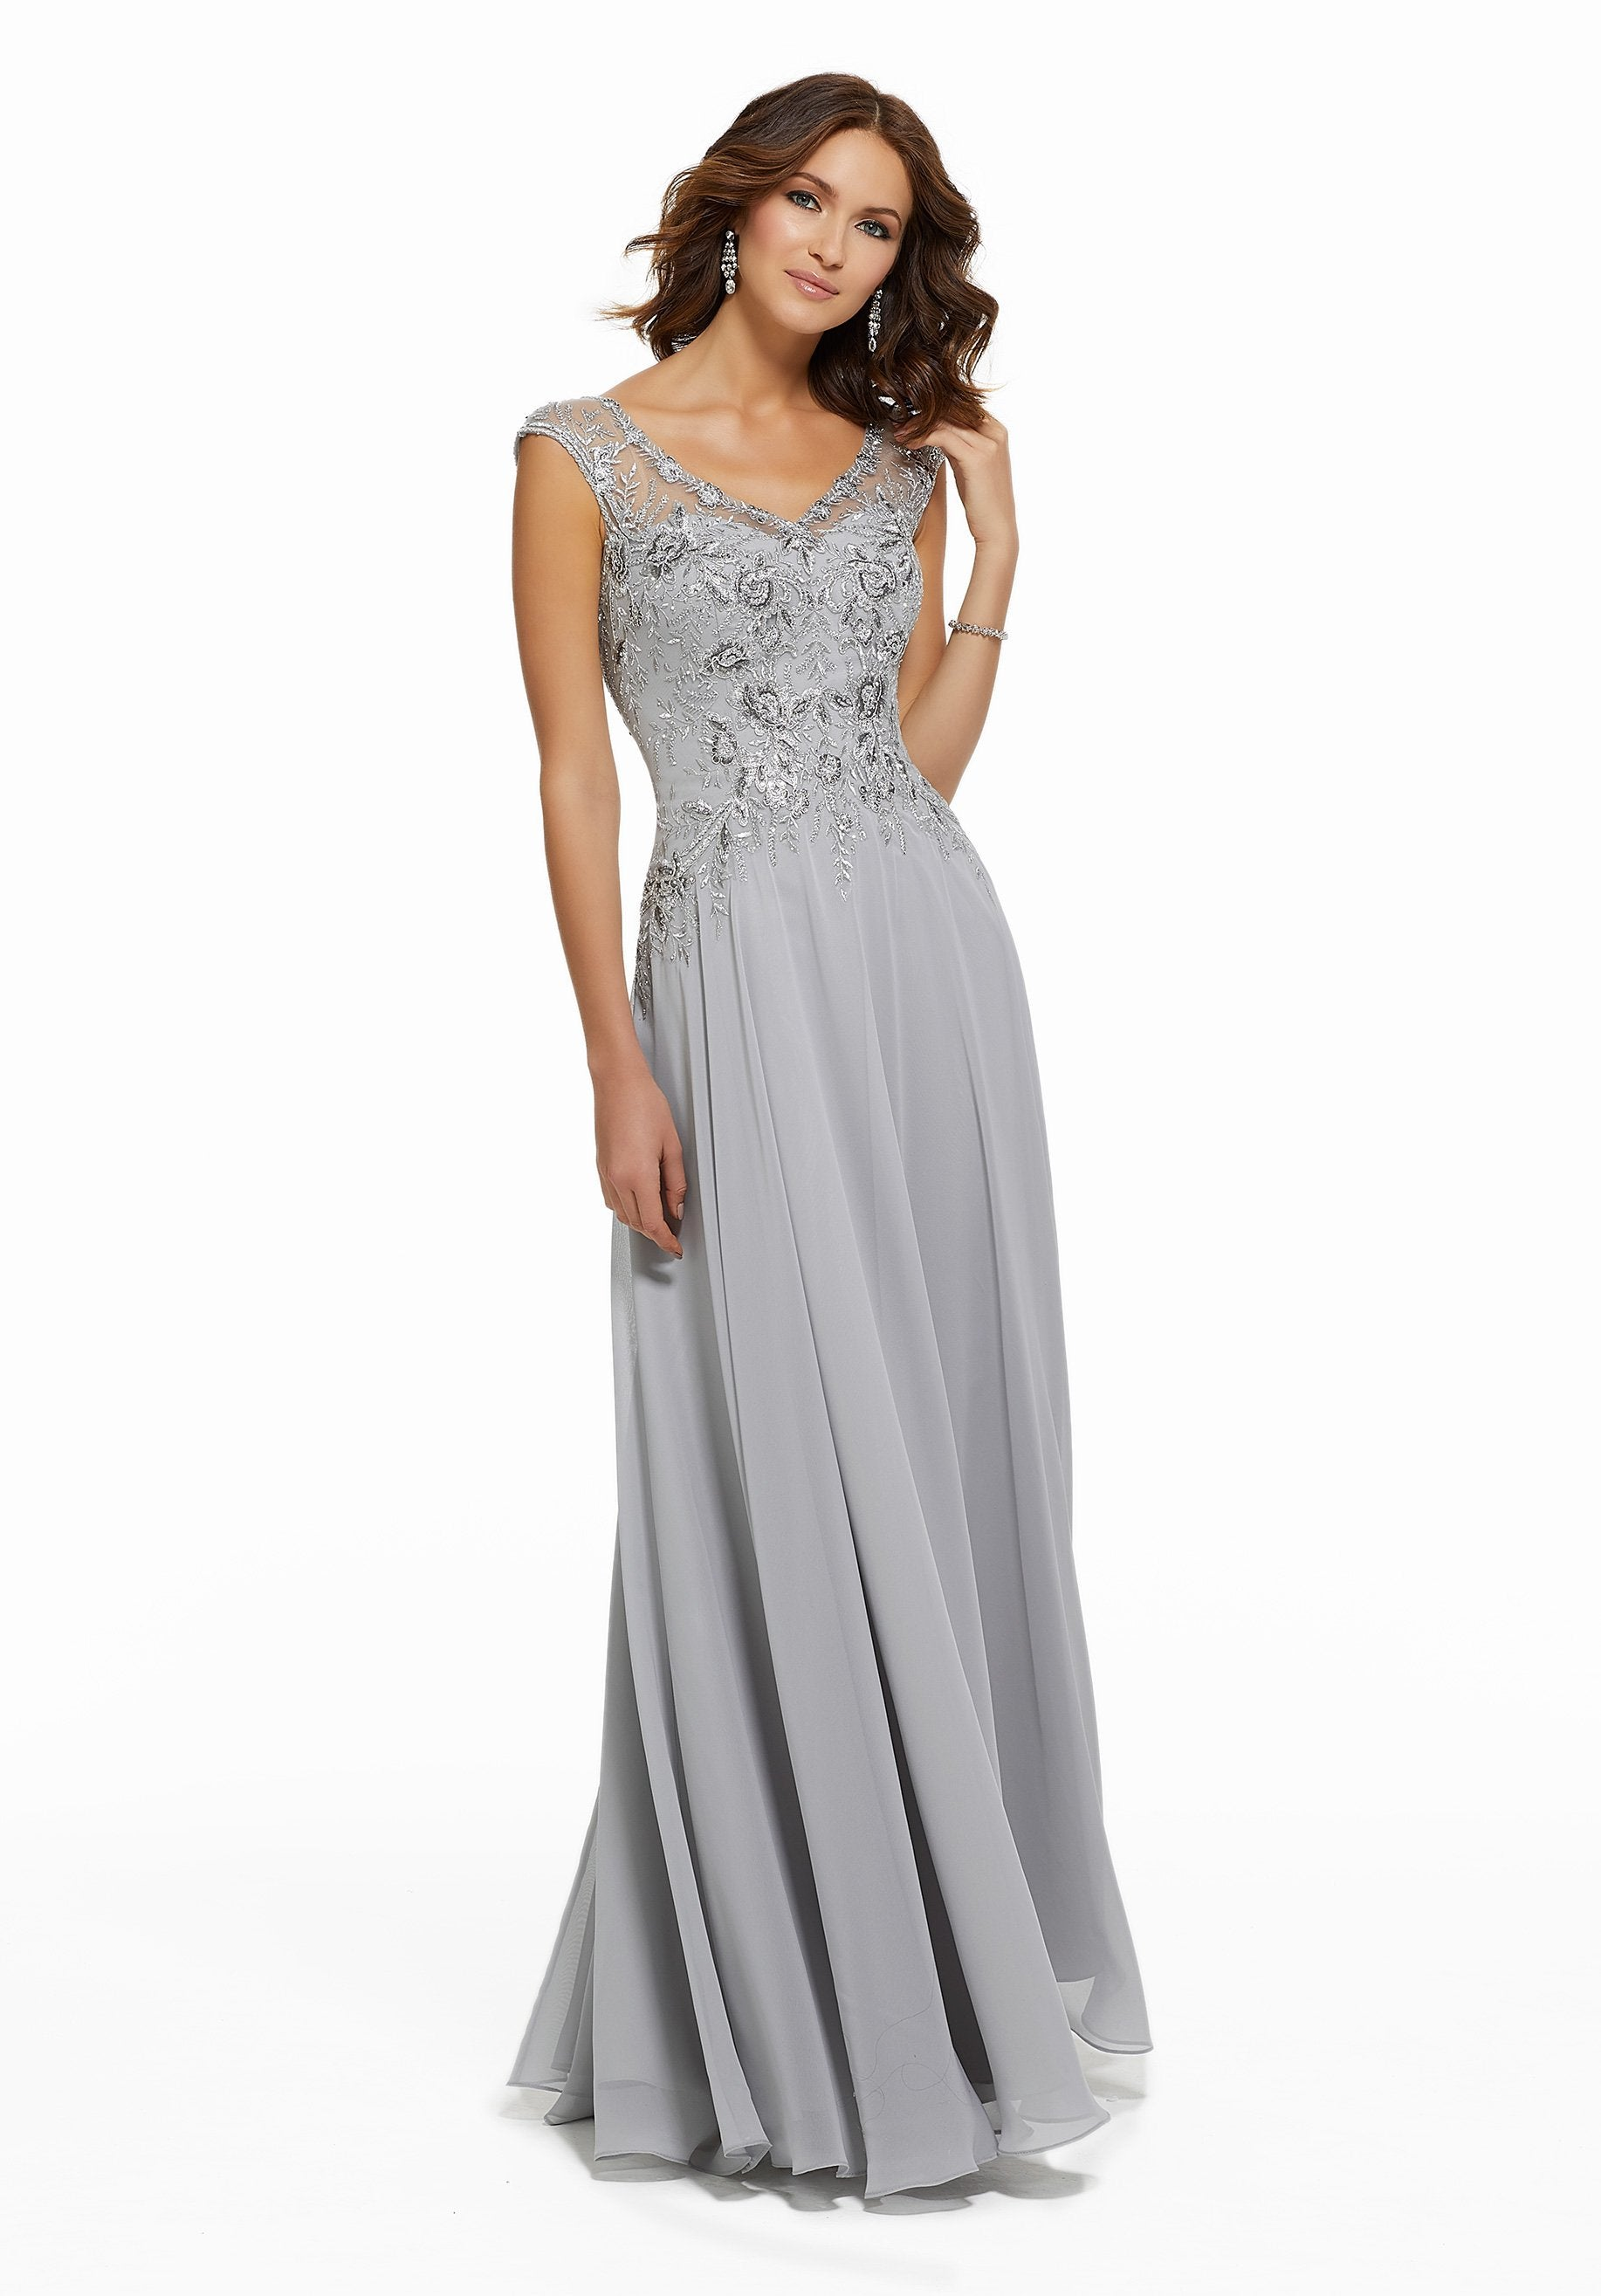 MGNY By Mori Lee - Beaded Lace V-neck A-line Chiffon Evening Dress 72021SC In Silver